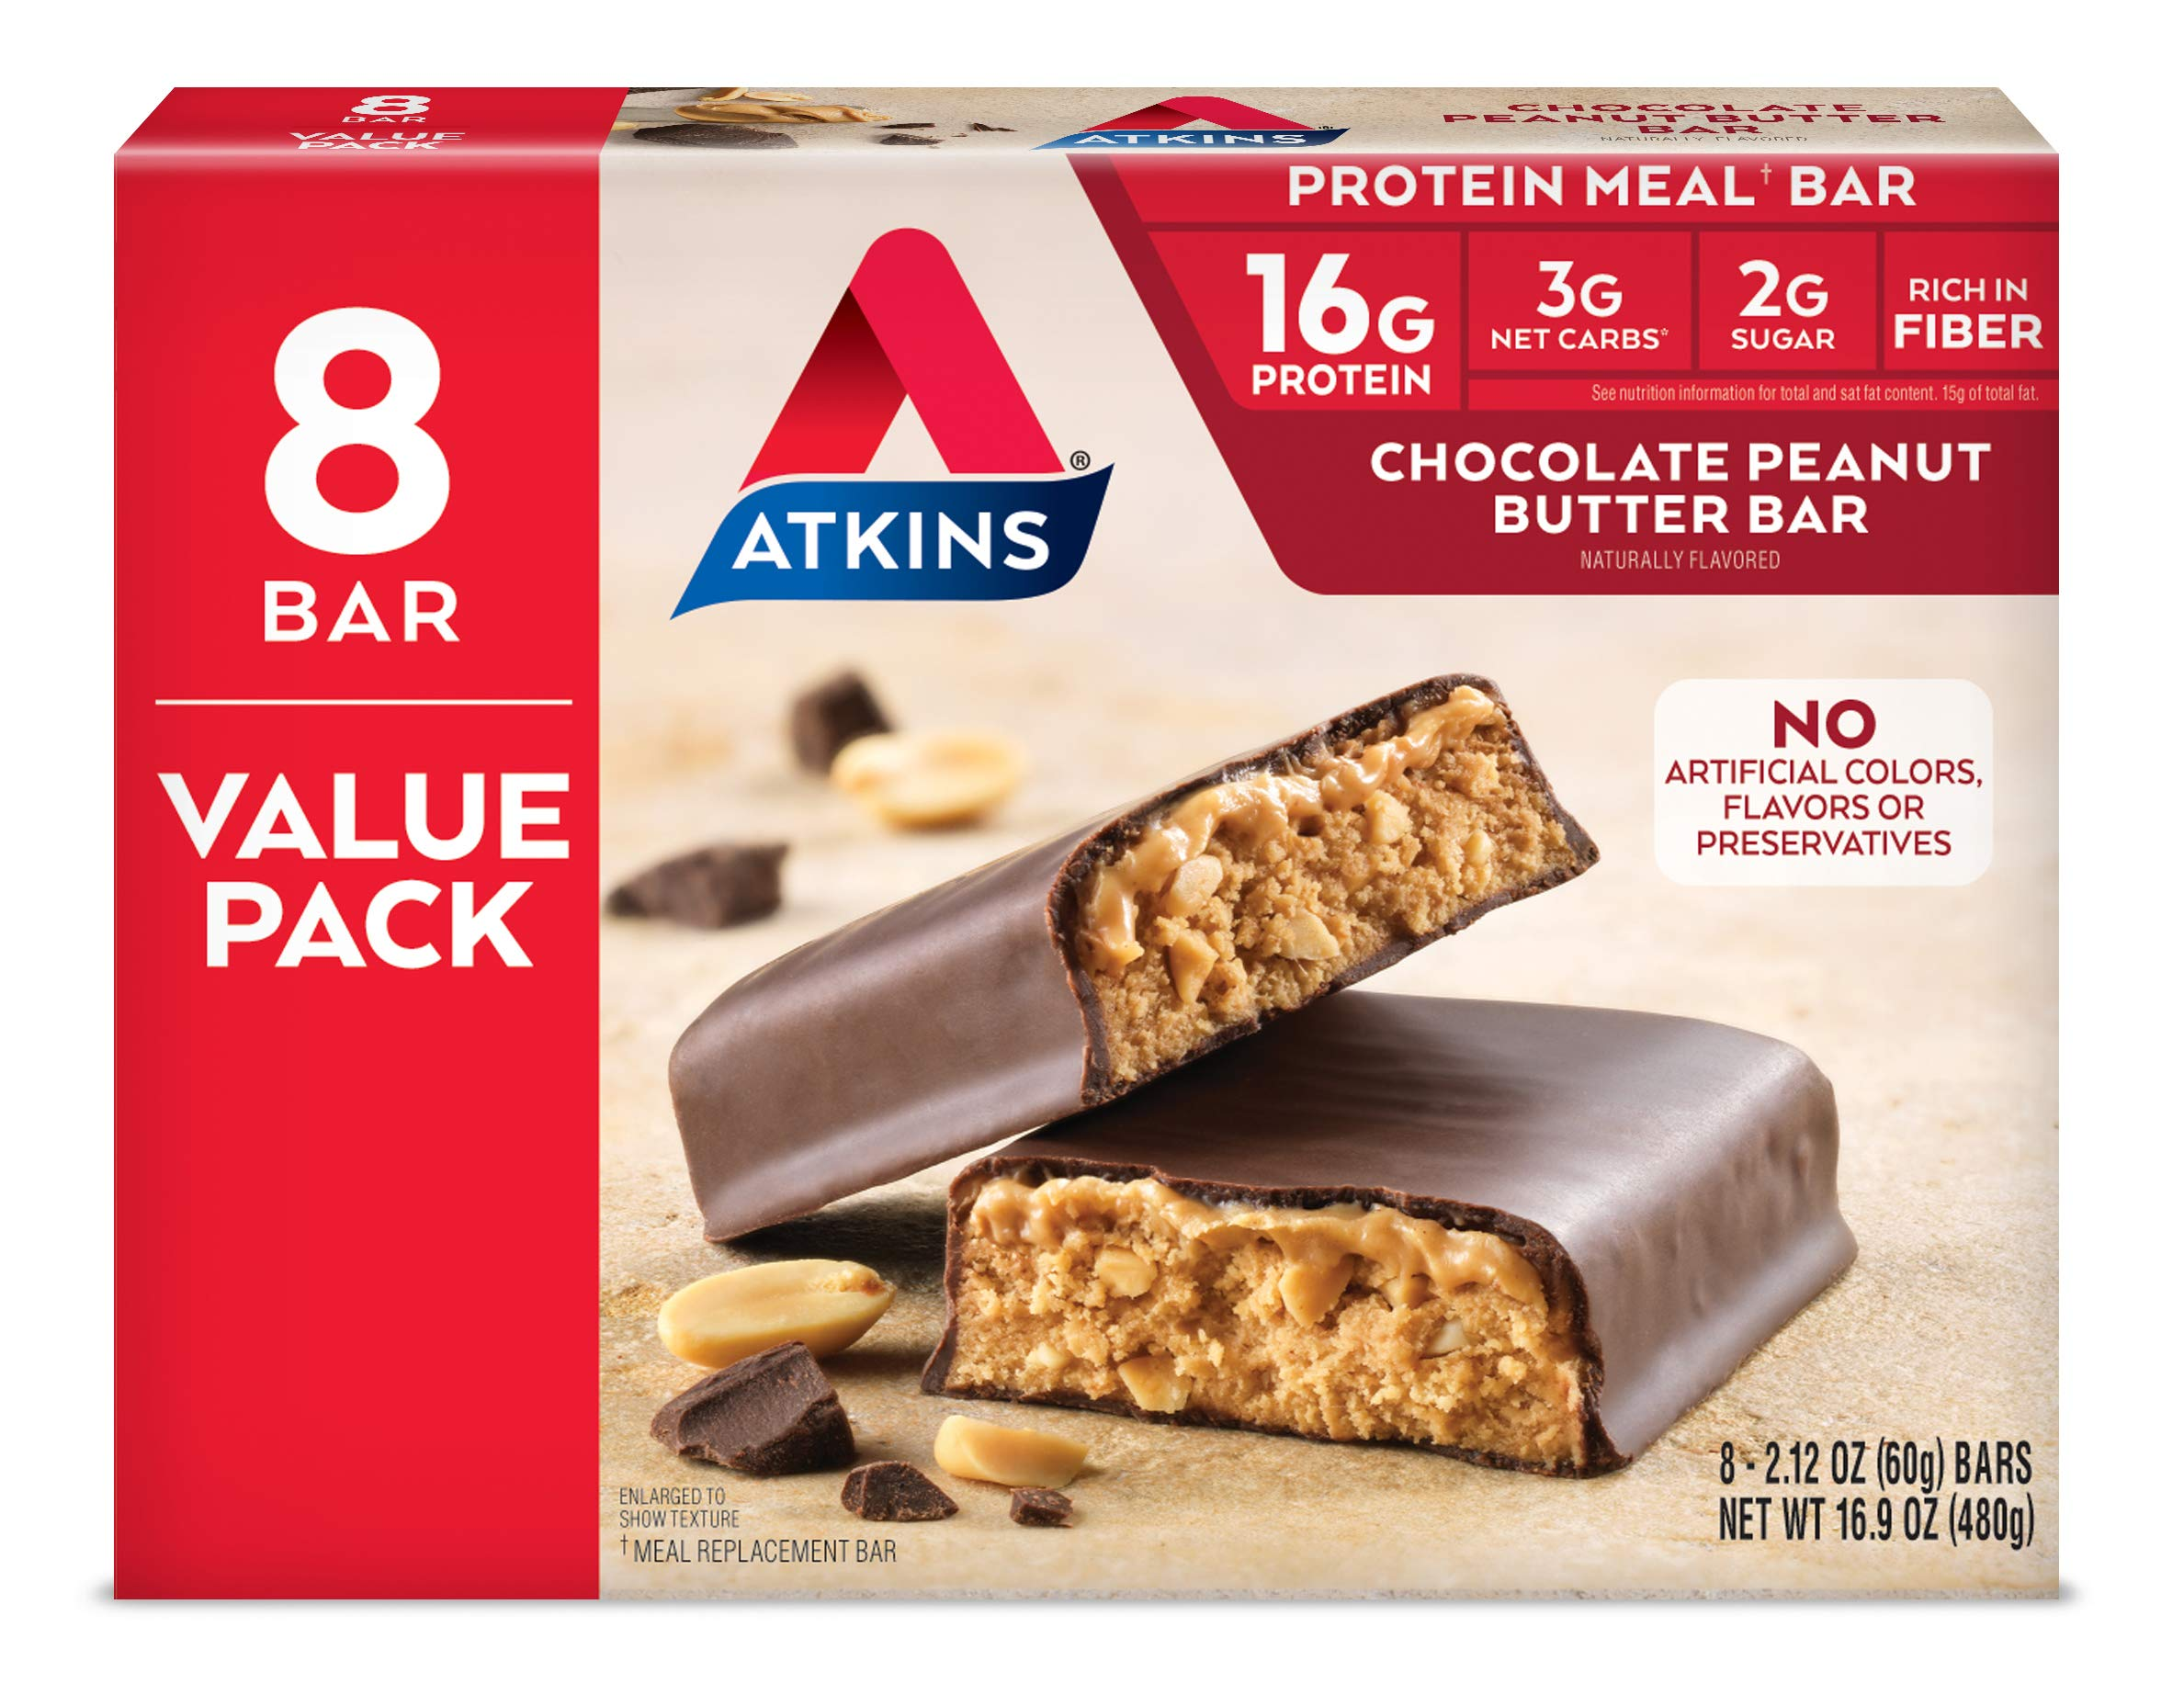 Atkins Chocolate Peanut Butter Protein Meal Bar. Rich in Fiber. Keto-Friendly. Value Pack (8 Bars)